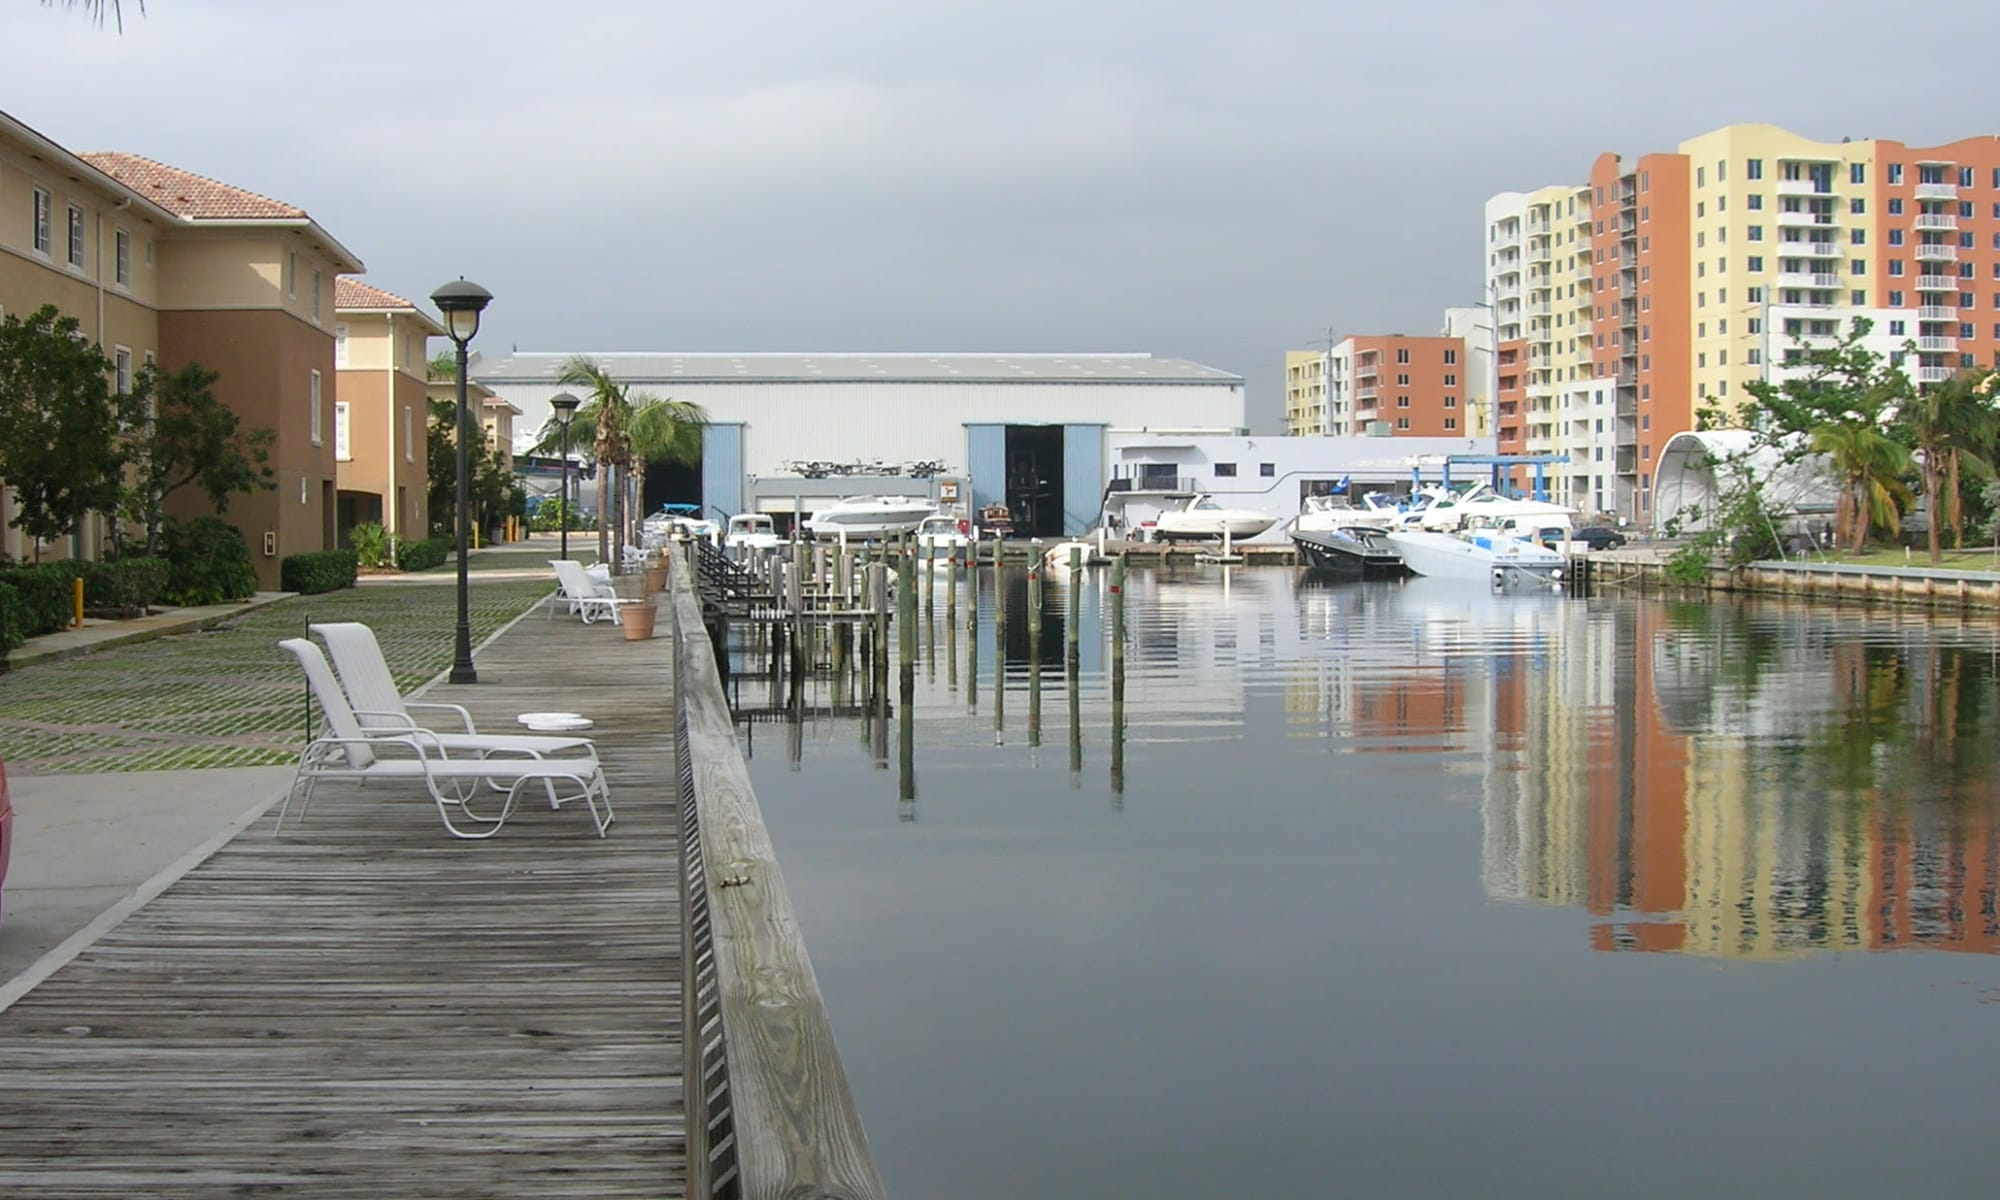 View of Aquamarina Hi-Lift harbor with buildings in the background